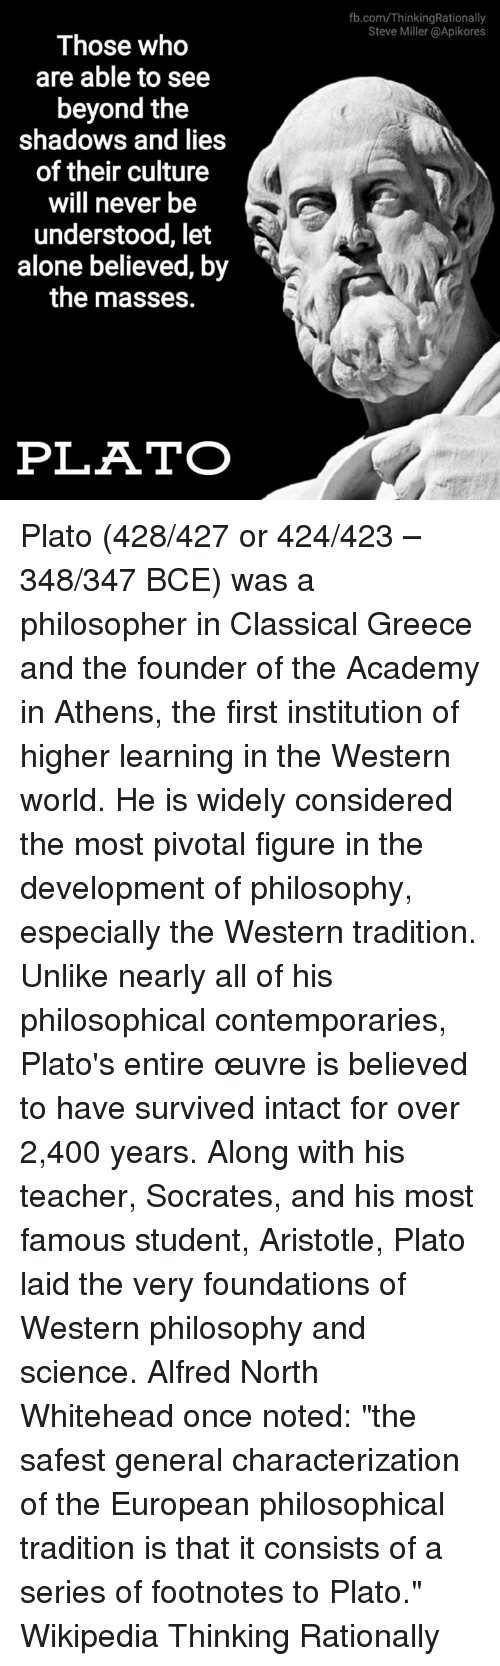 a view of plato on the shadow world in the philosophy The athenian philosopher plato (c428-347 bc) is one of the most important figures of the ancient greek world and the entire history of western thought in.